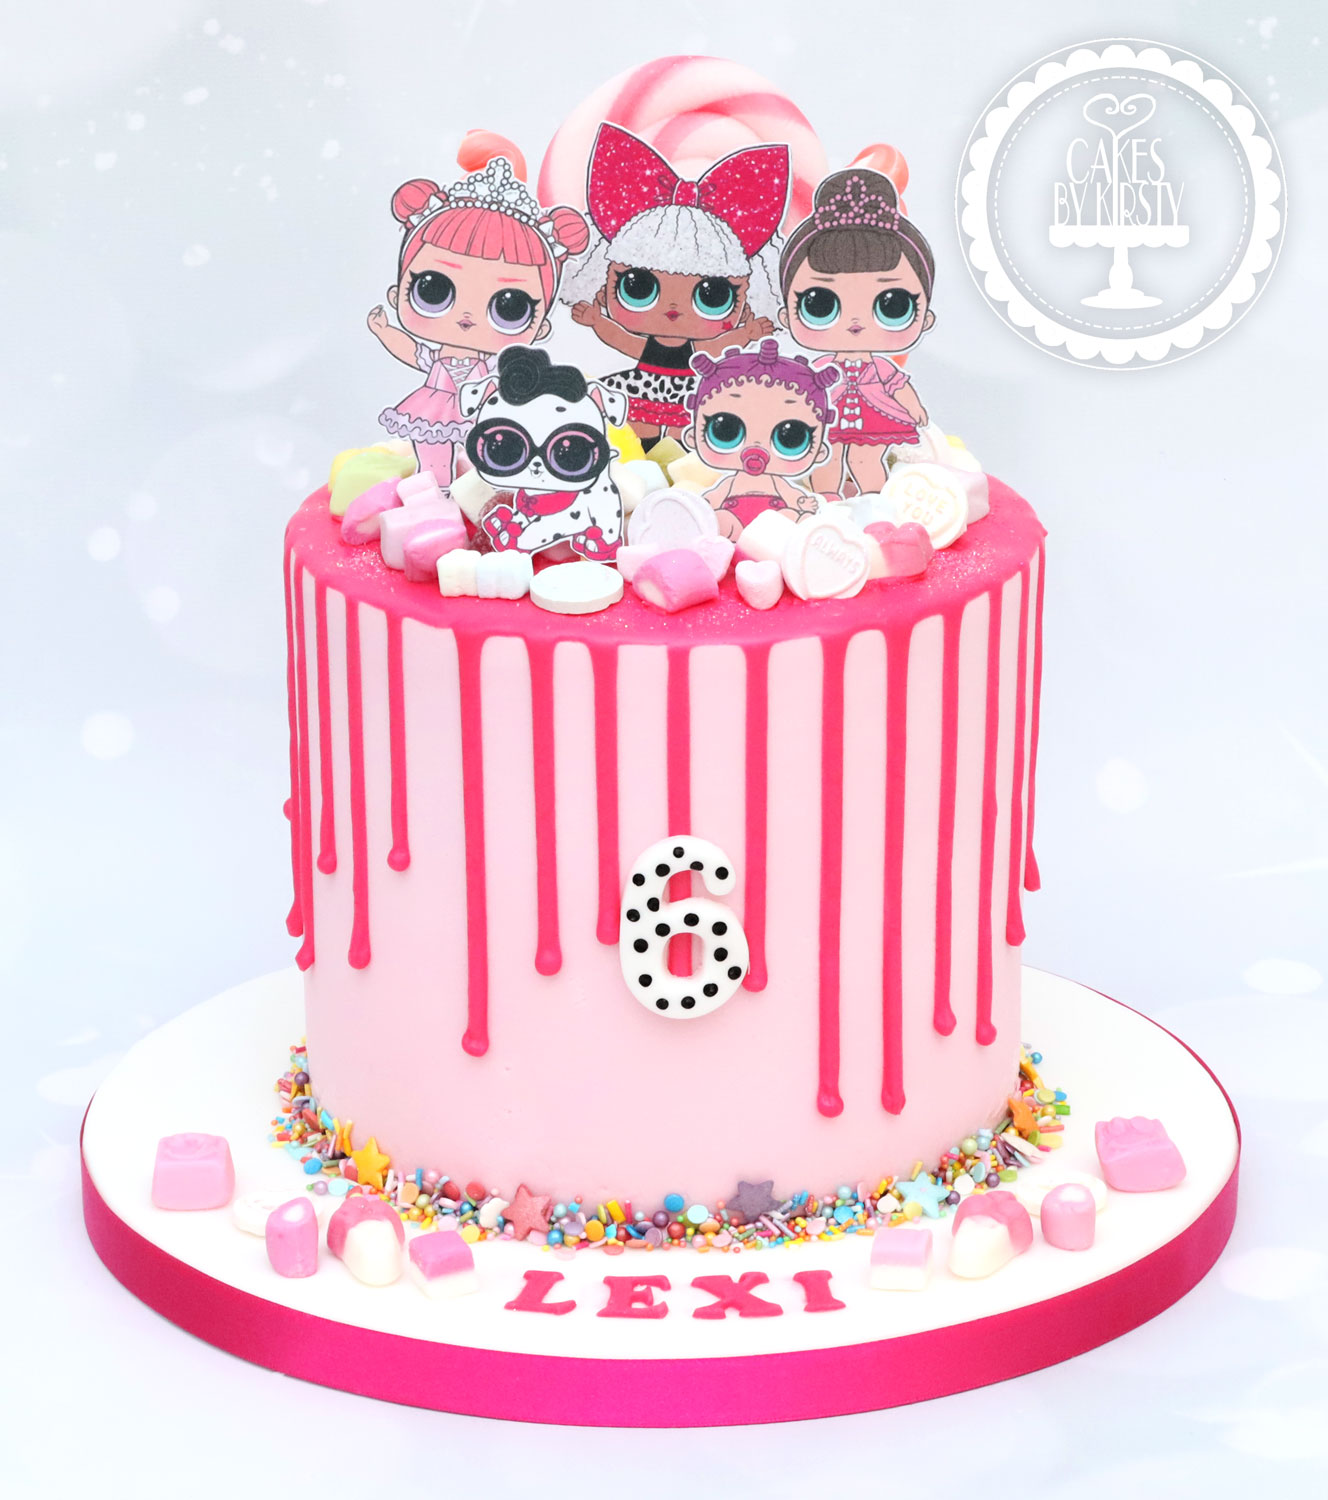 Miraculous Cakes By Kirsty Childrens Cakes Personalised Birthday Cards Veneteletsinfo